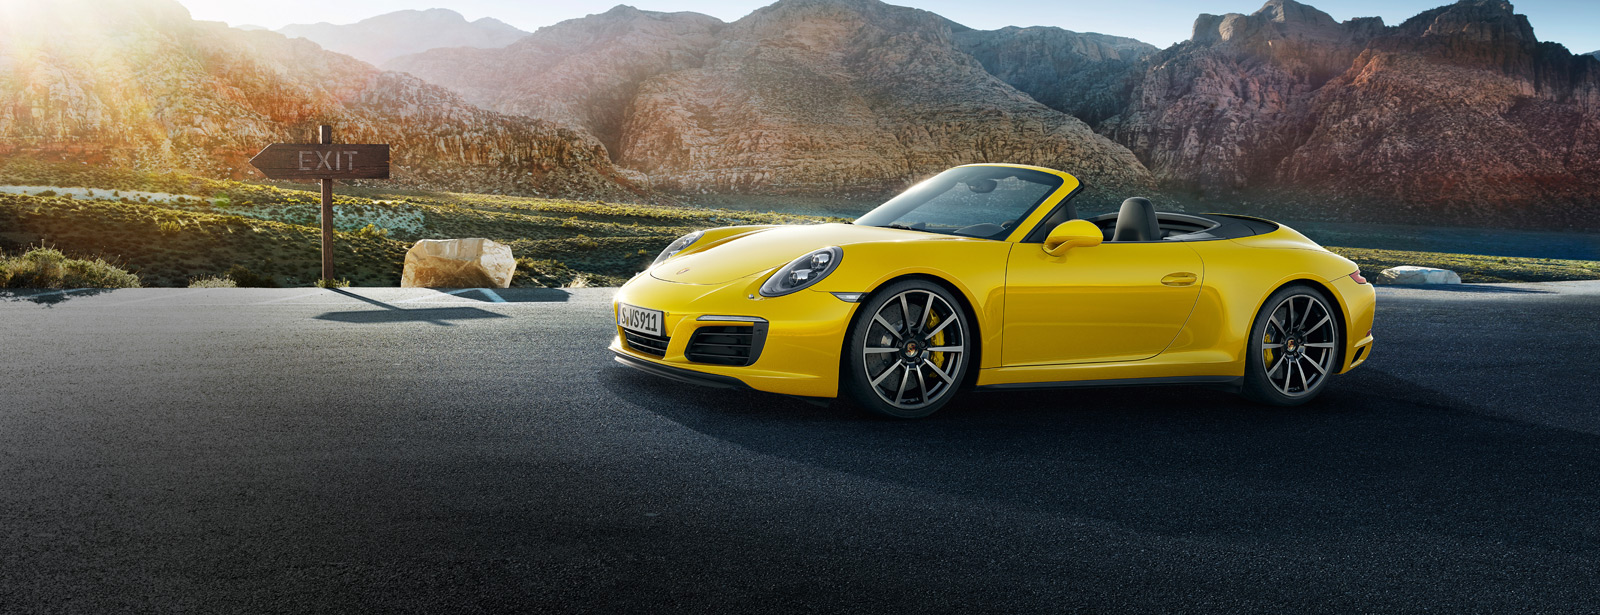 Porsche The new 911 Carrera 4S Cabriolet